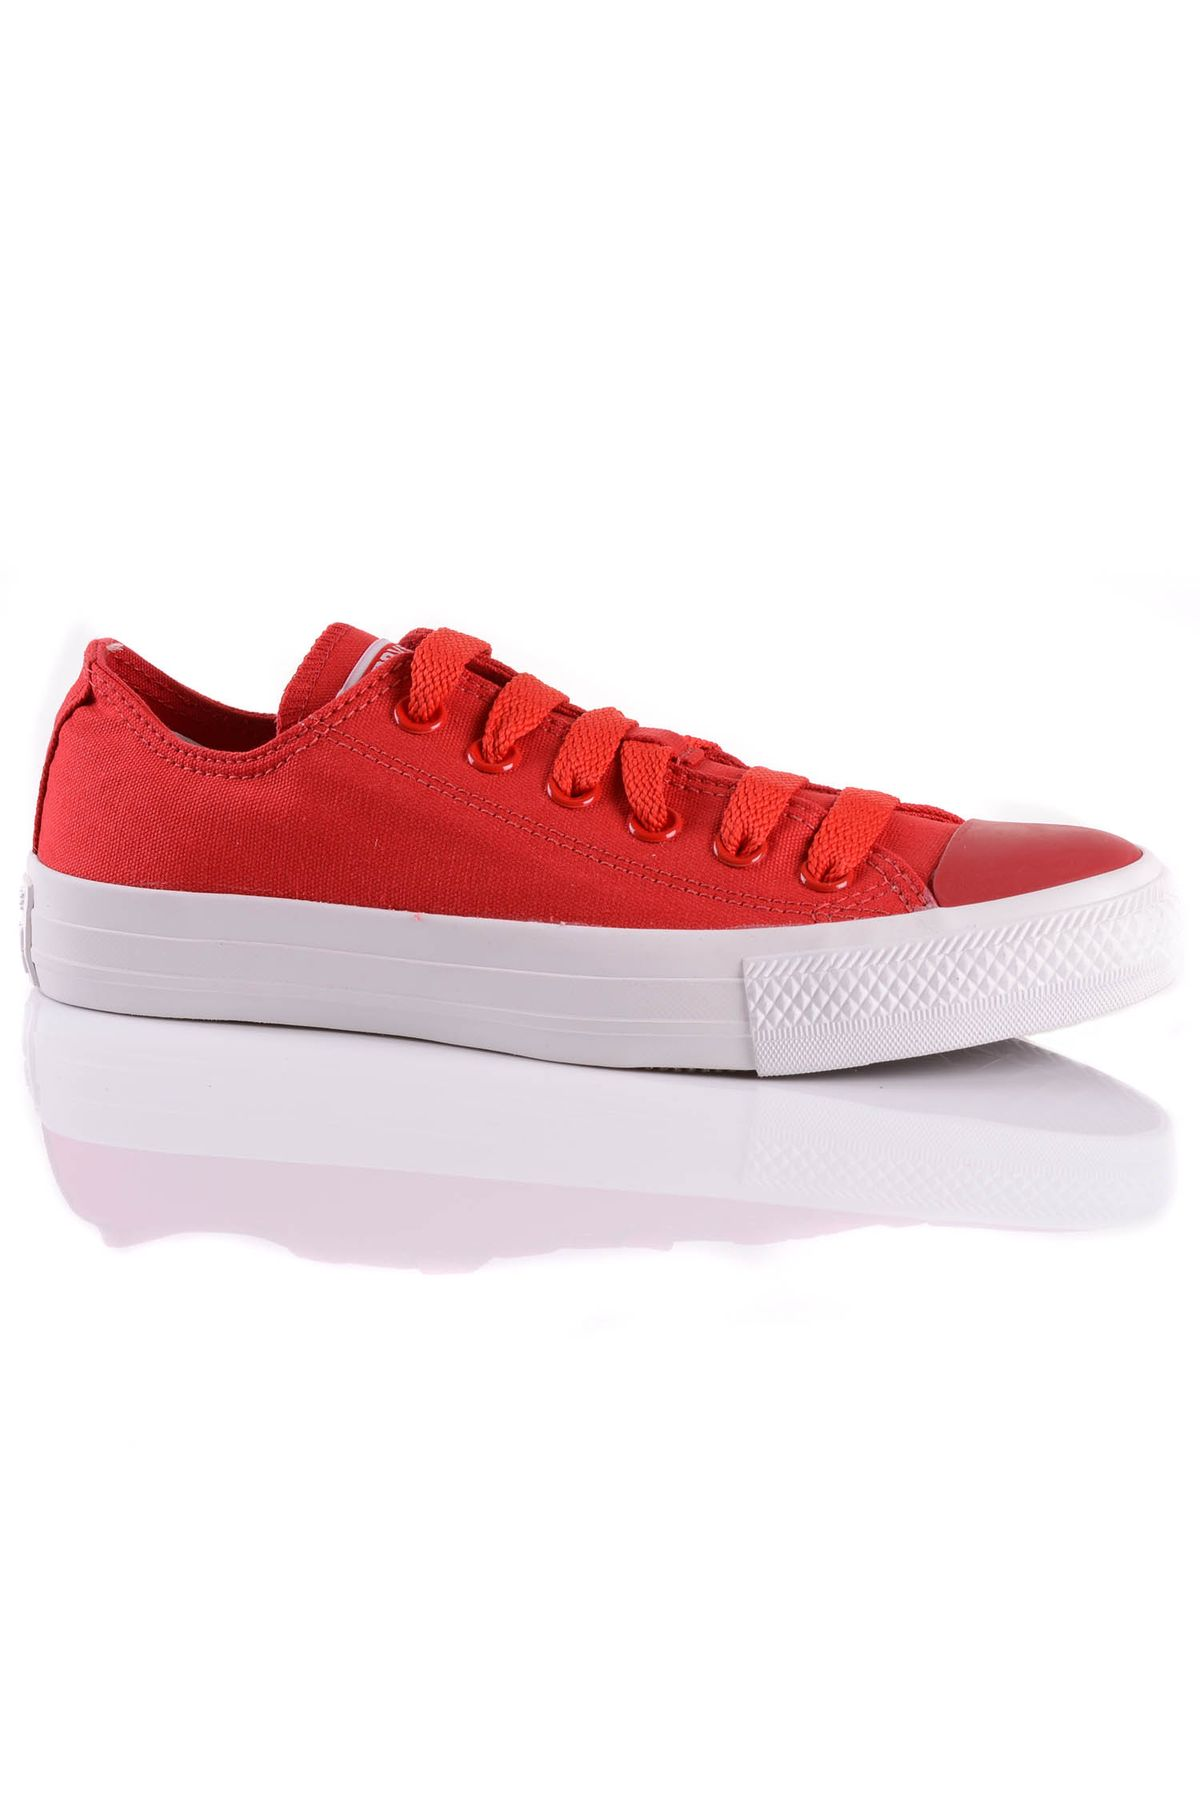 8d199fcaa6 Tênis Converse All Star Ct As Ox